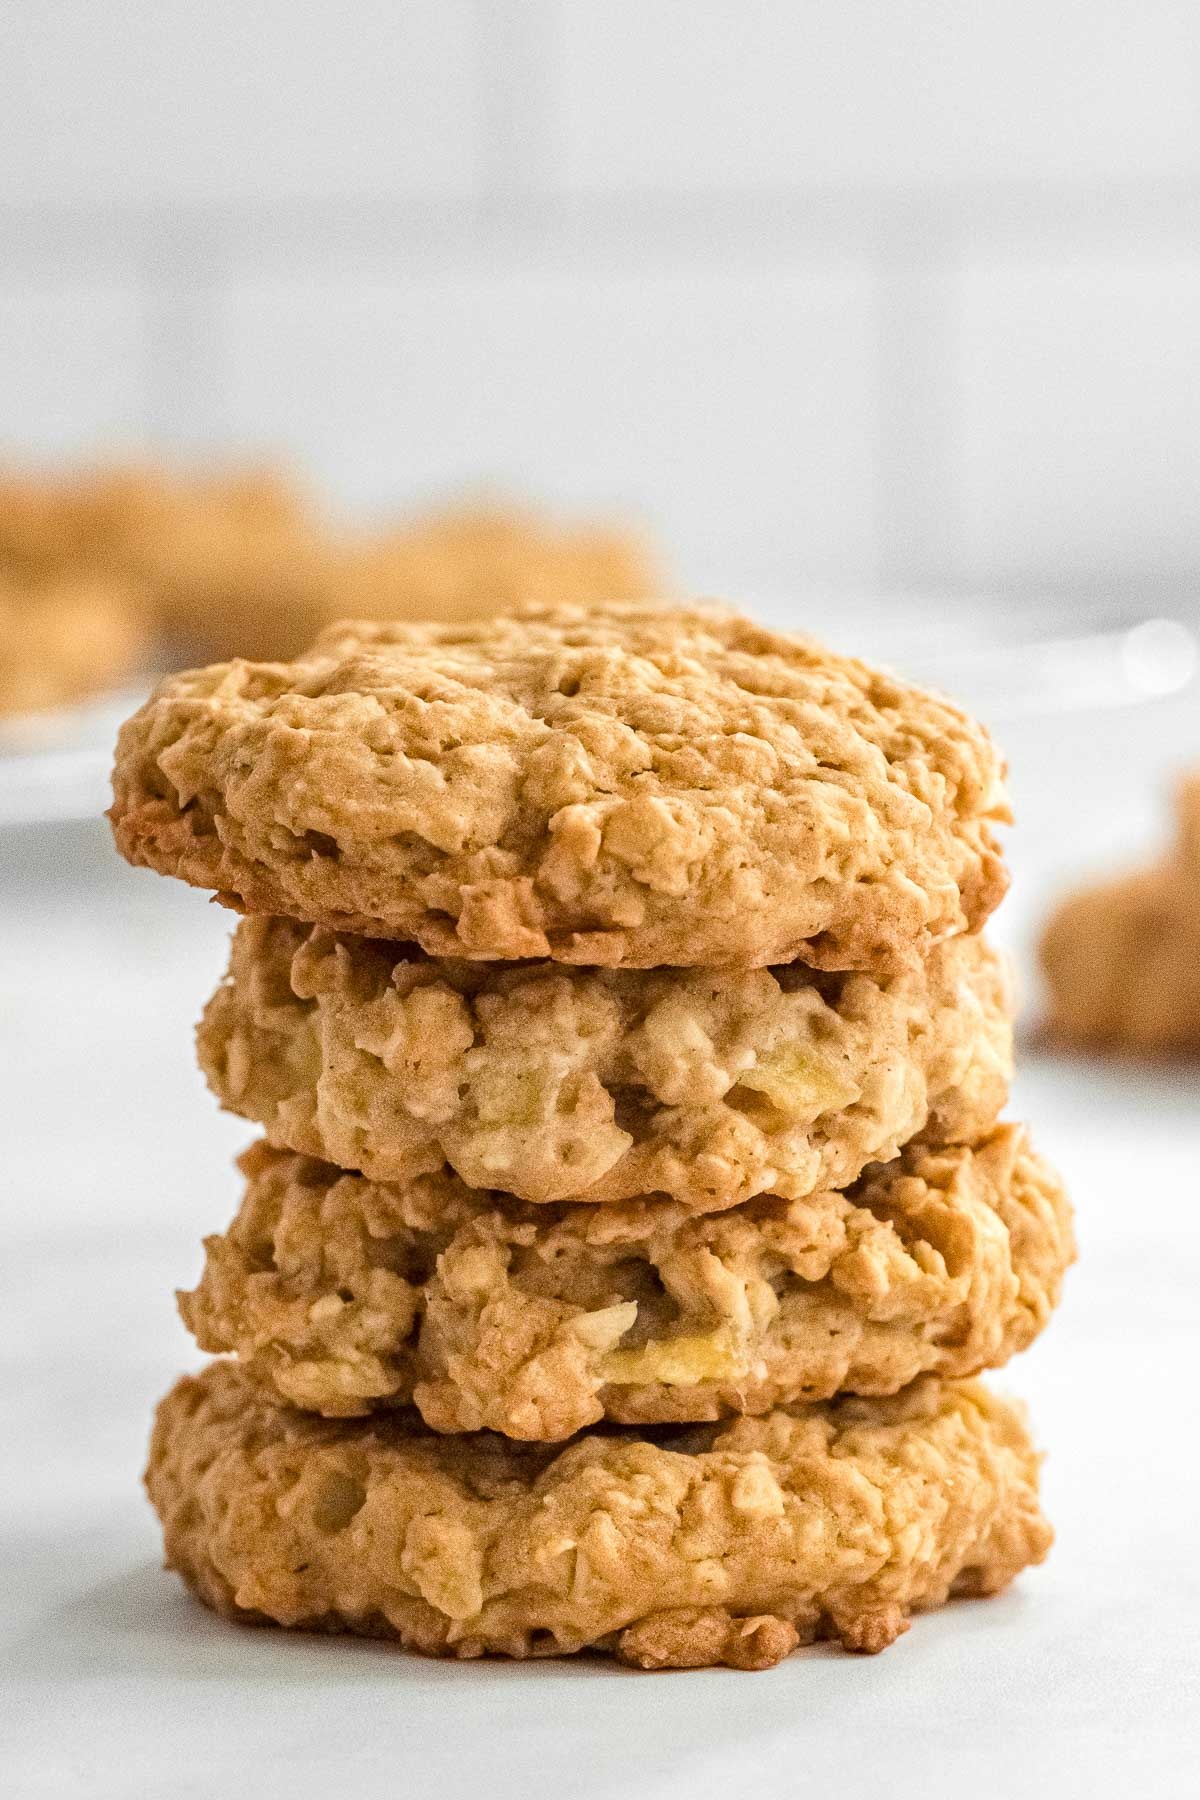 a stack of 3 Apple Pie Oatmeal Cookies on a white plate